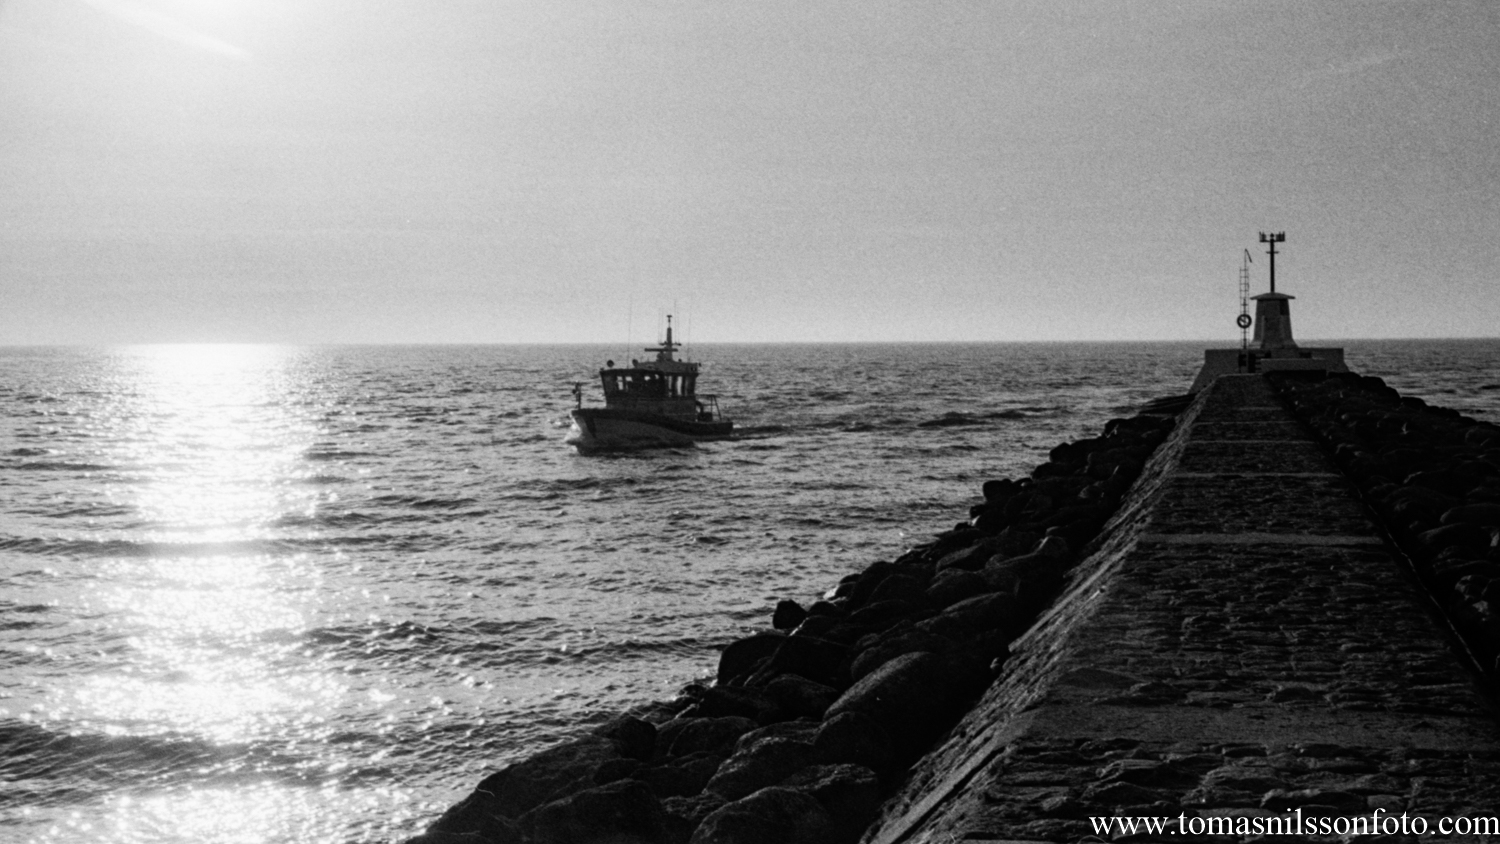 The volunteer rescue boat coming in from the ocean. From what I could see they didn't bring anyone in…thankfully.